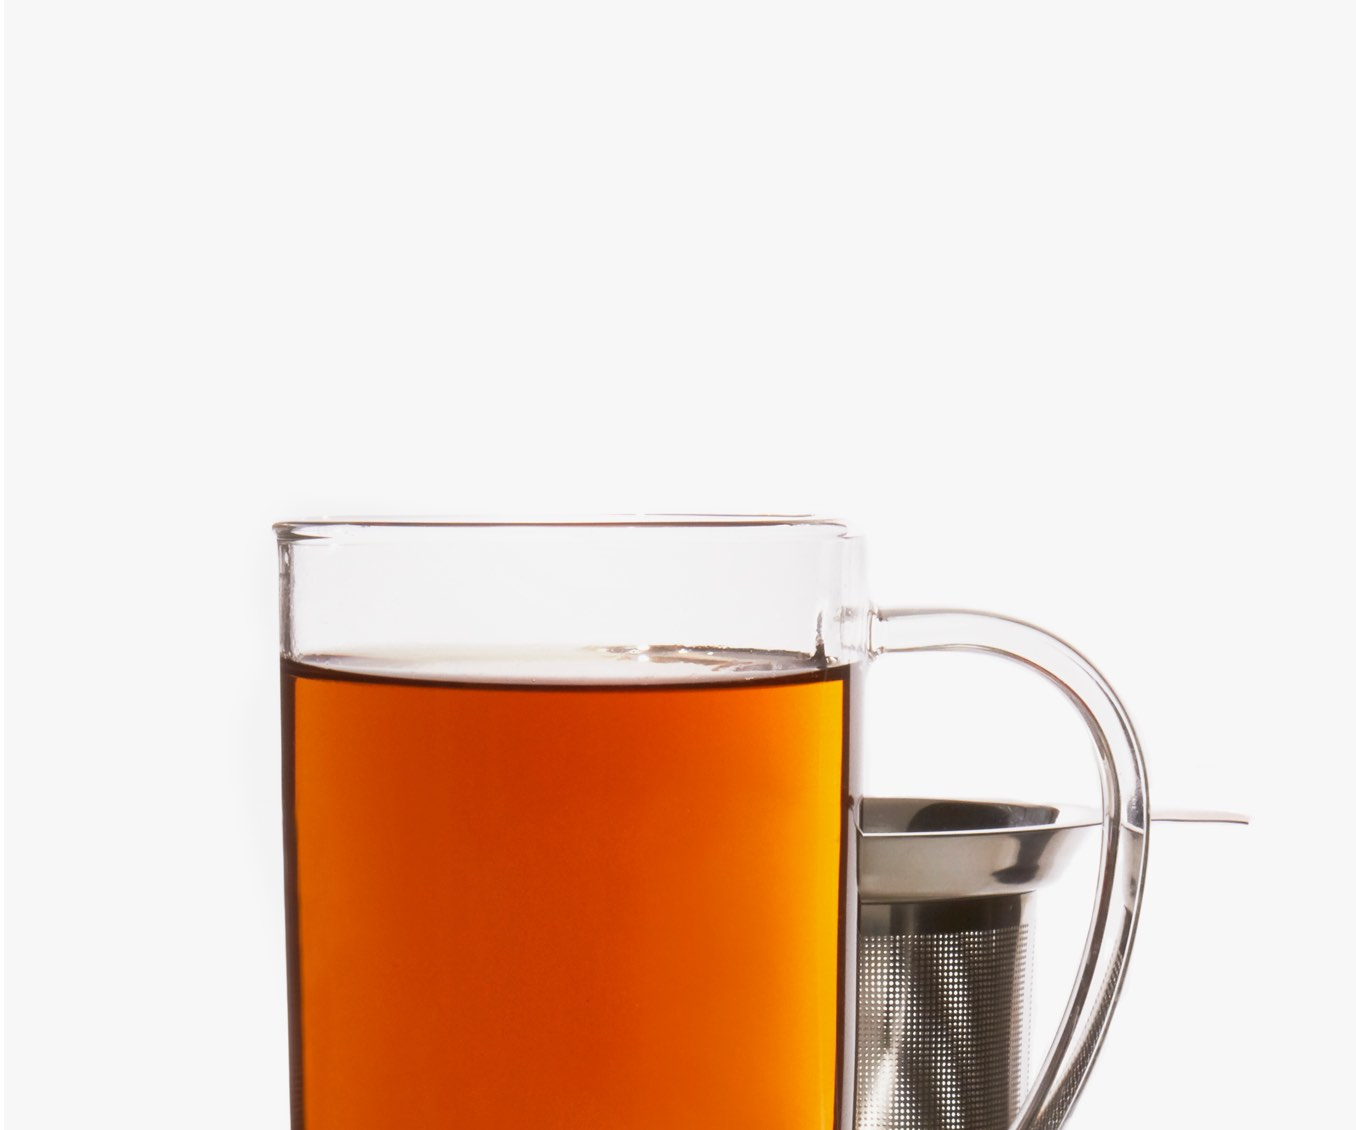 Clear 16 oz glass mug filled with chai in front of stainless steel tea infuser.